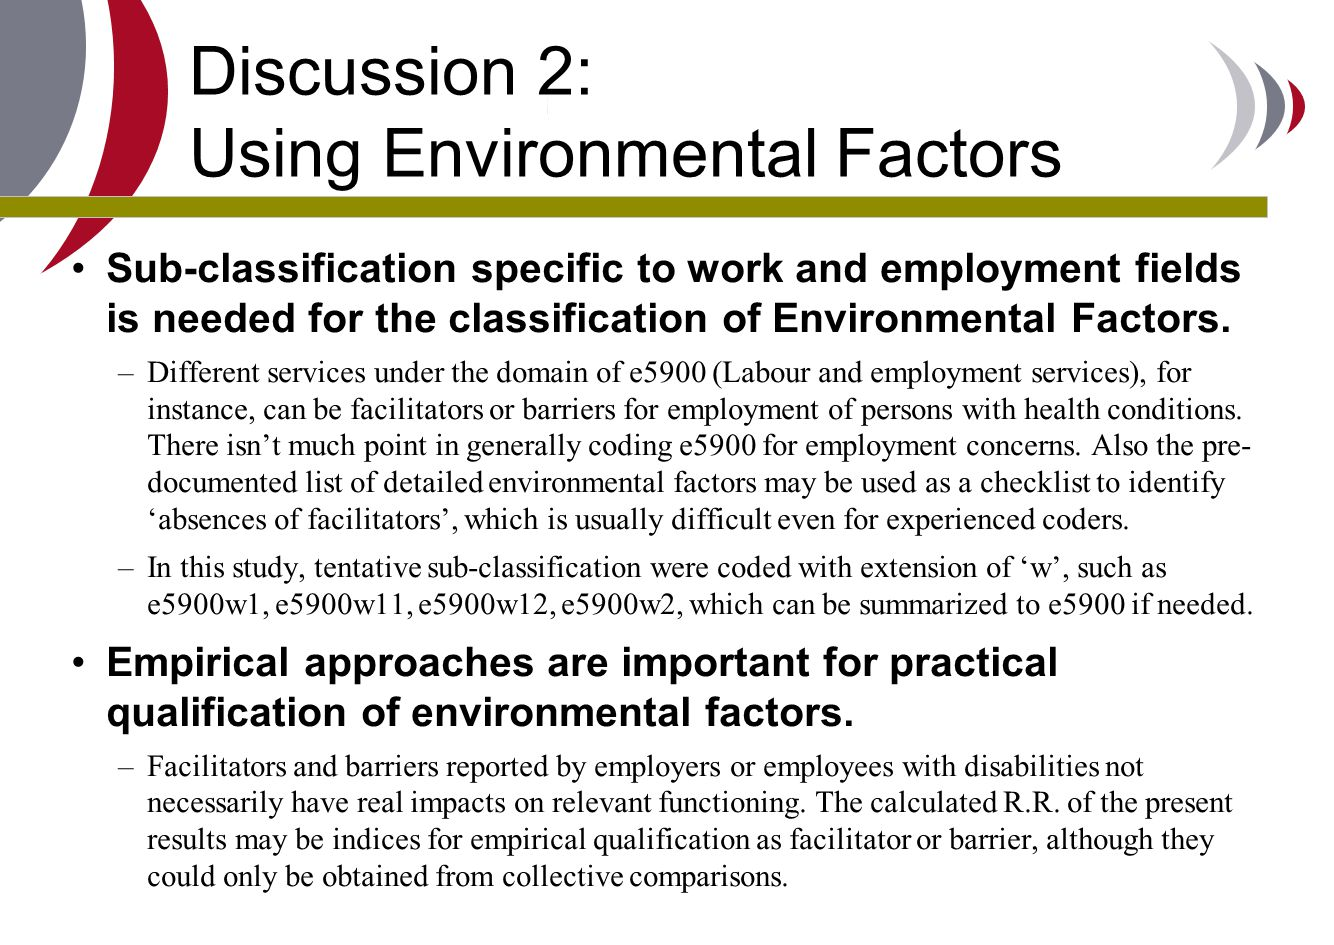 Discussion 2: Using Environmental Factors